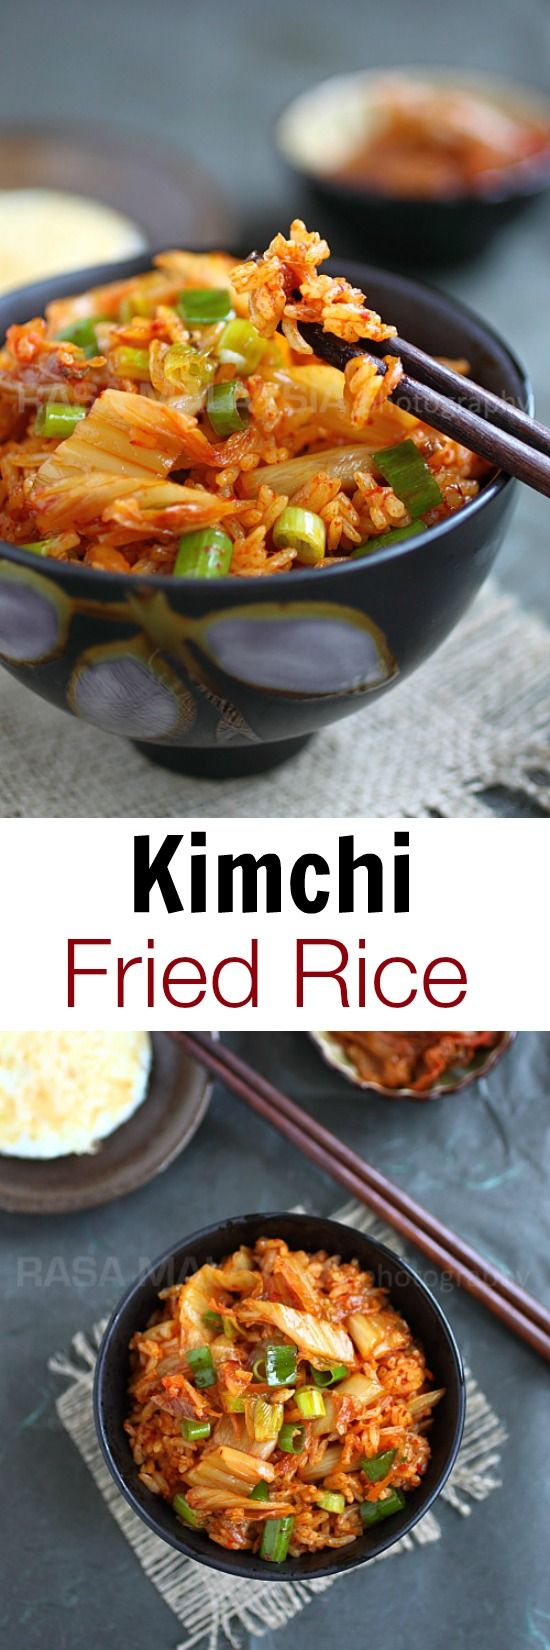 Kimchi Fried Rice - the easiest and most delicious fried rice EVER! Made with kimchi and rice. Get the recipe!!!   rasamalaysia.com